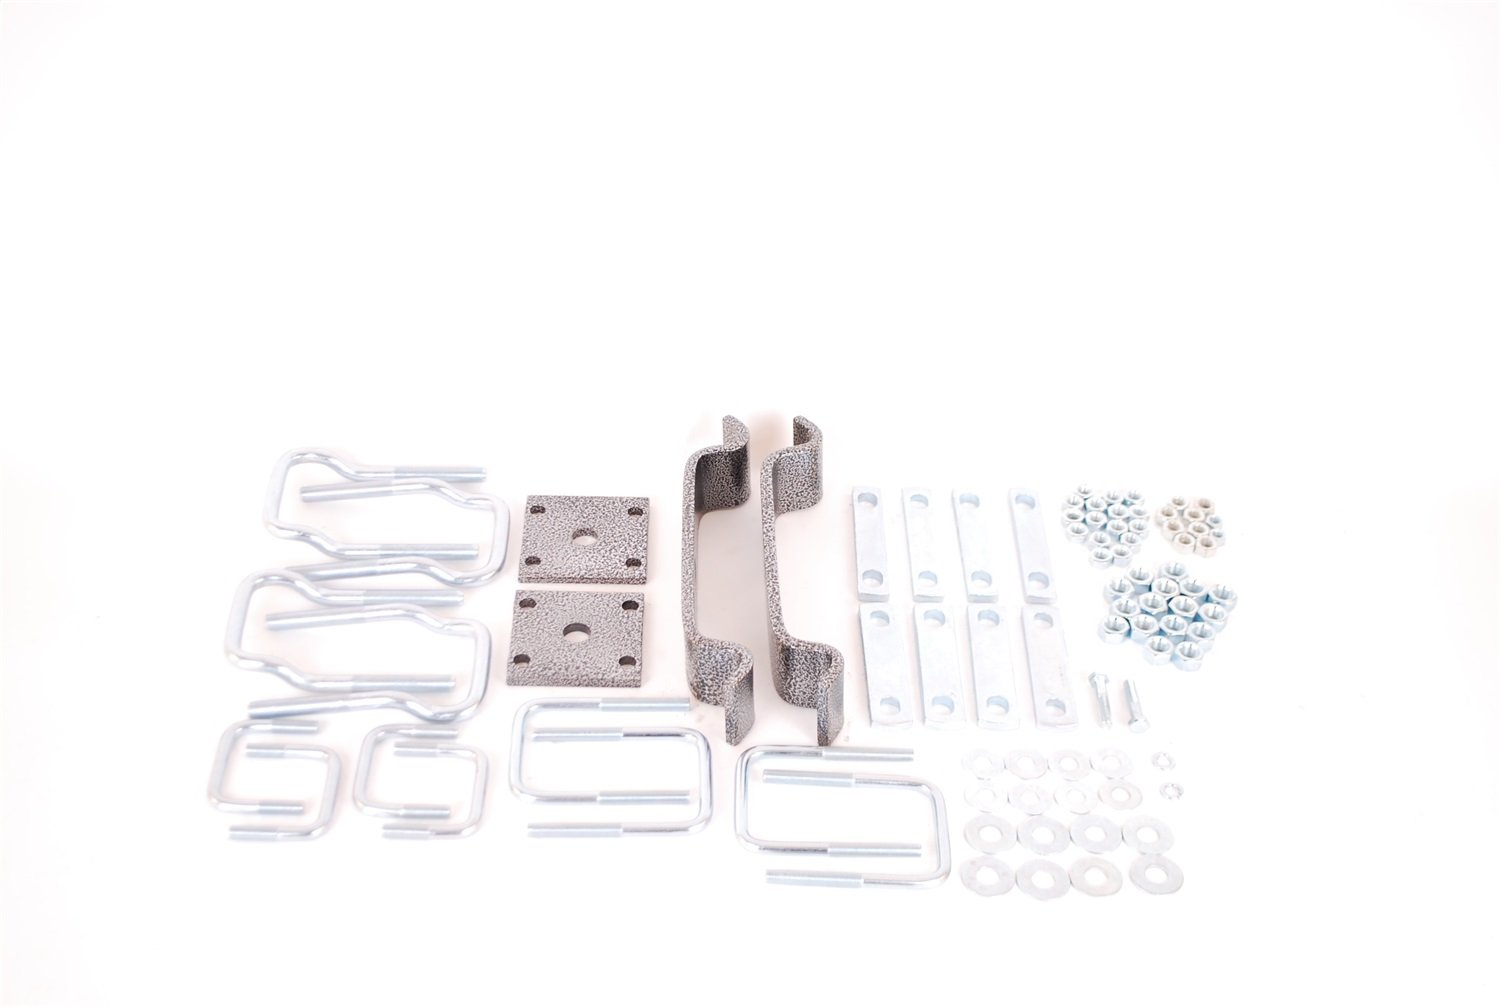 Hellwig 25312 LP-25 Mounting Hardware Kit by Hellwig (Image #1)